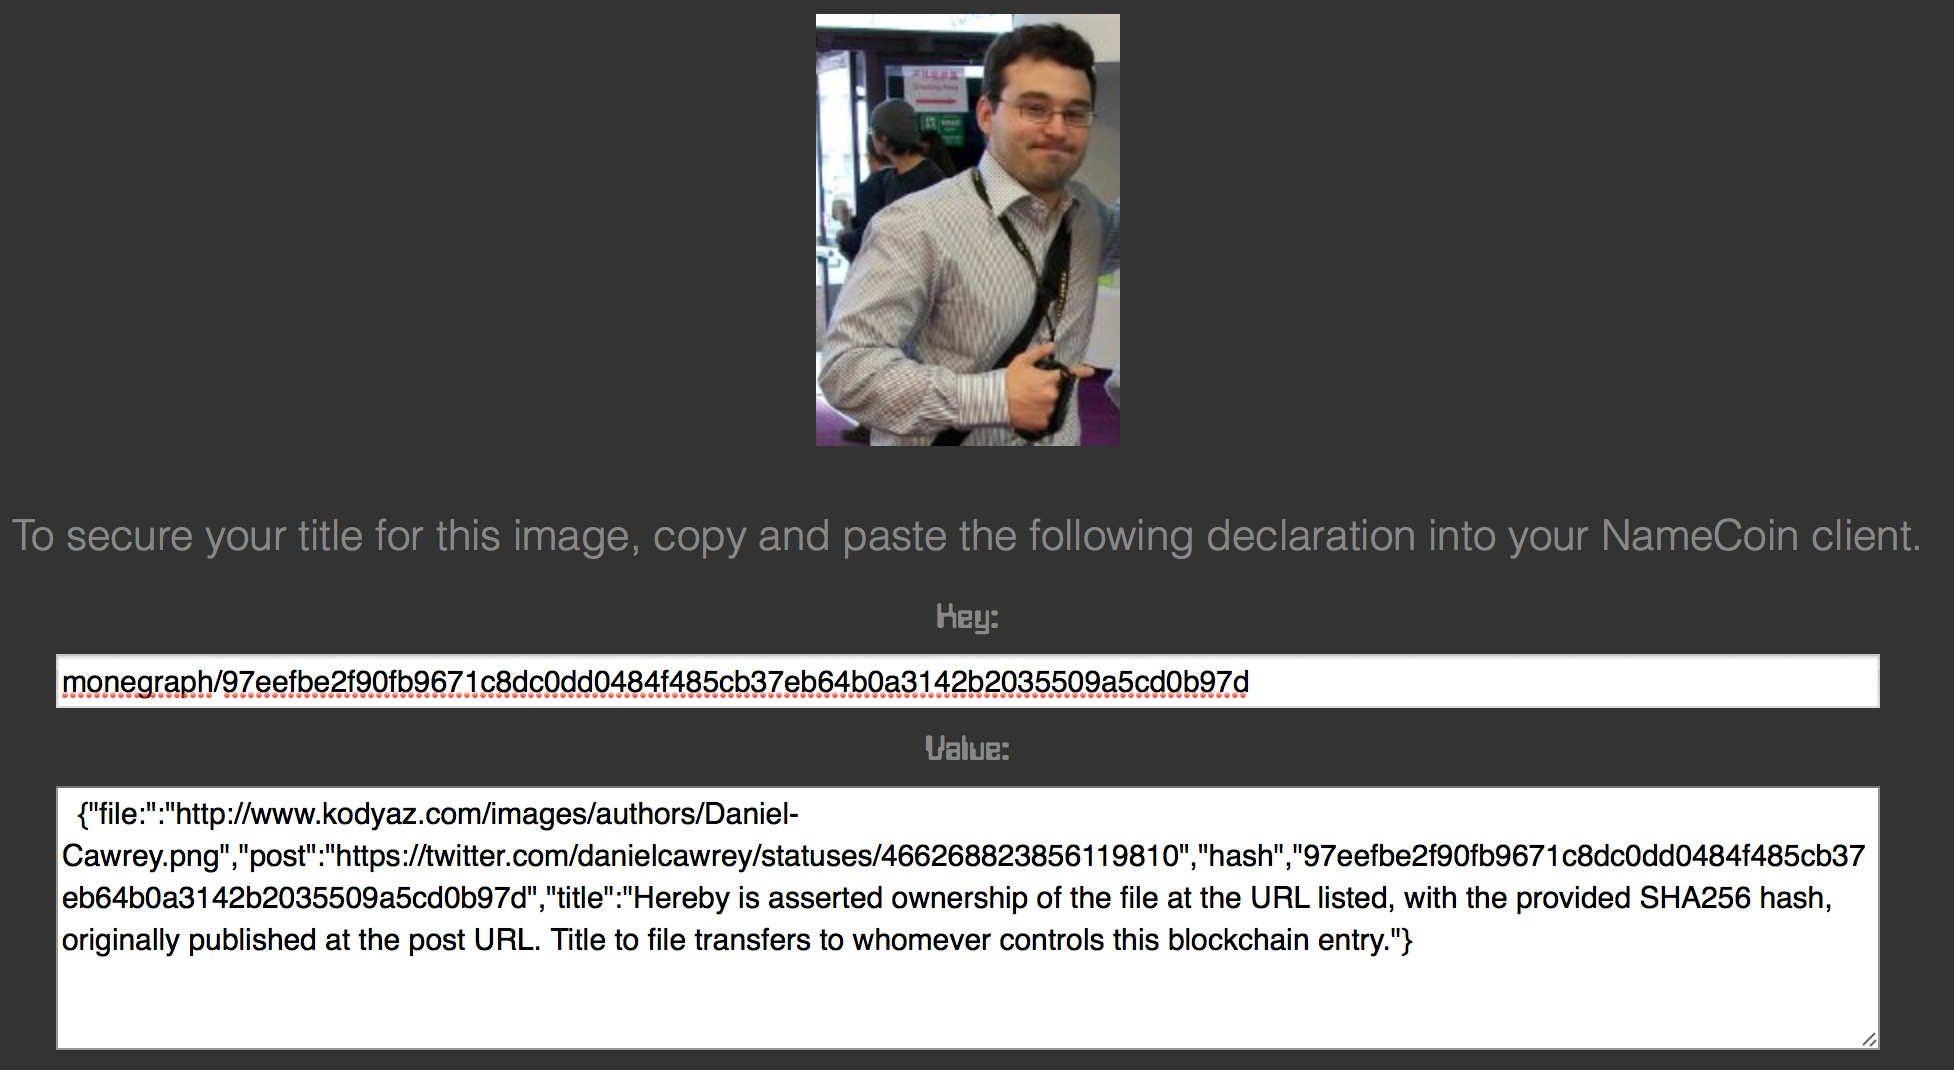 Monegraph allows people to certify images on the web, then tweets out public proof.